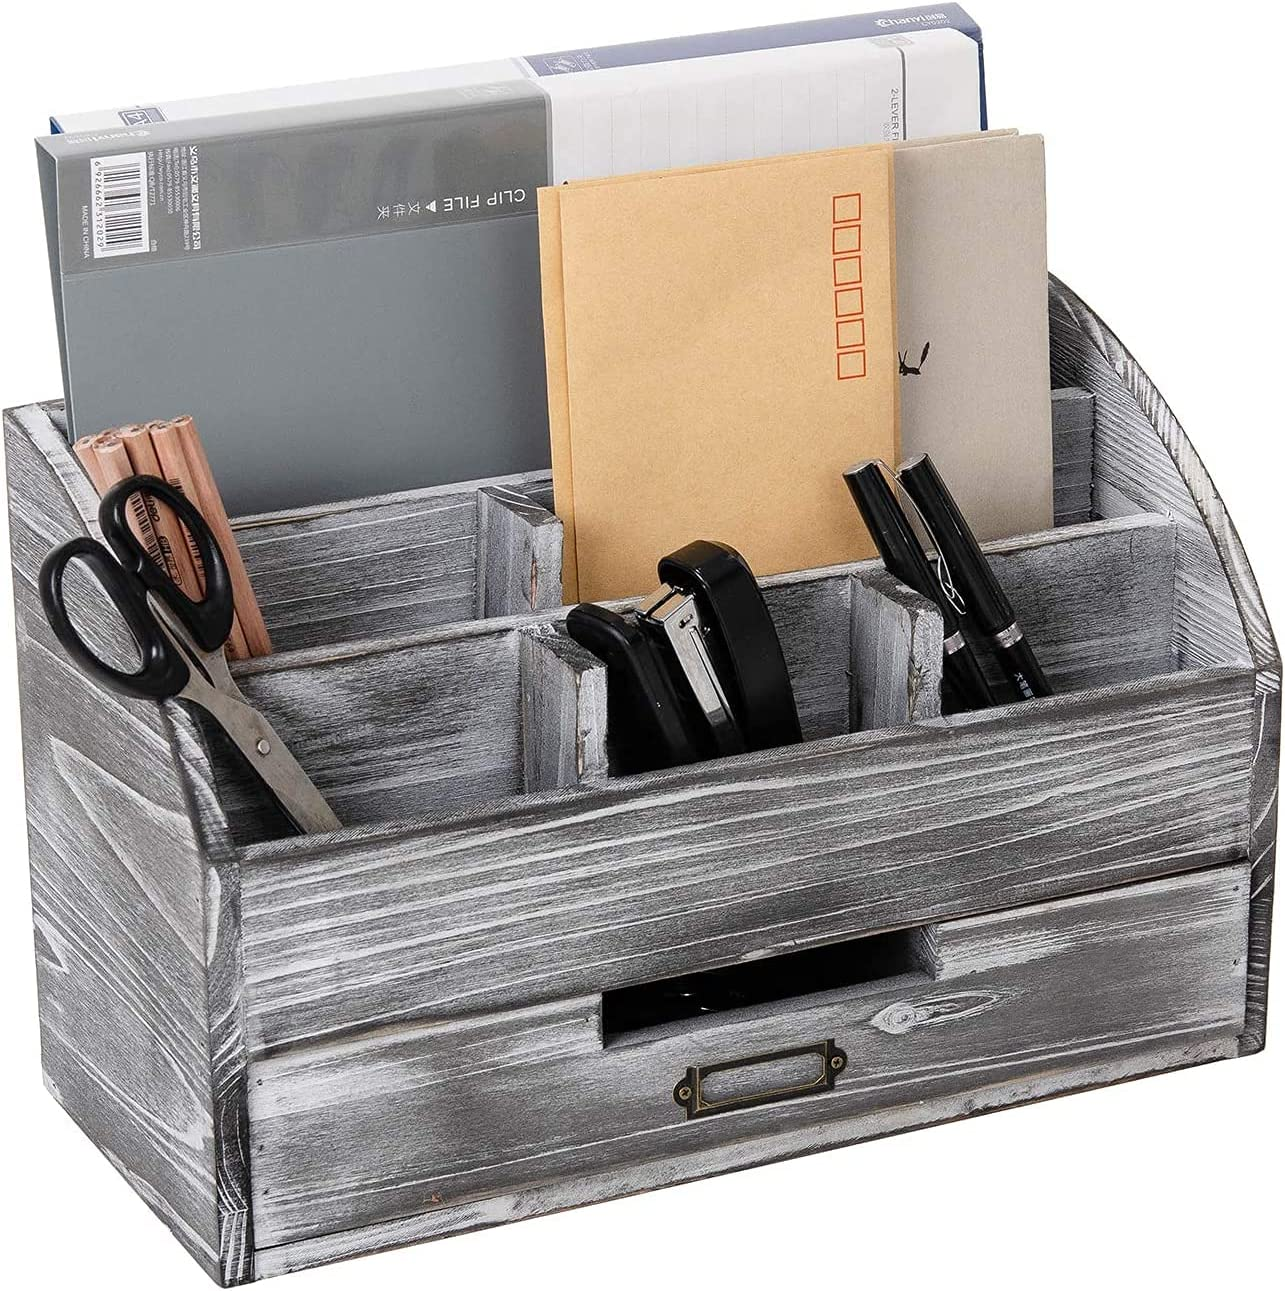 Rustic Wooden Office Desk Organizer 5 Compartment with 2 Drawer &Counter Home Desk Tabletop Desktop Mail Rack ,Storage for Pens Notebooks Folders Pencils and Office Supplies Jewelry storage box (Grey white)